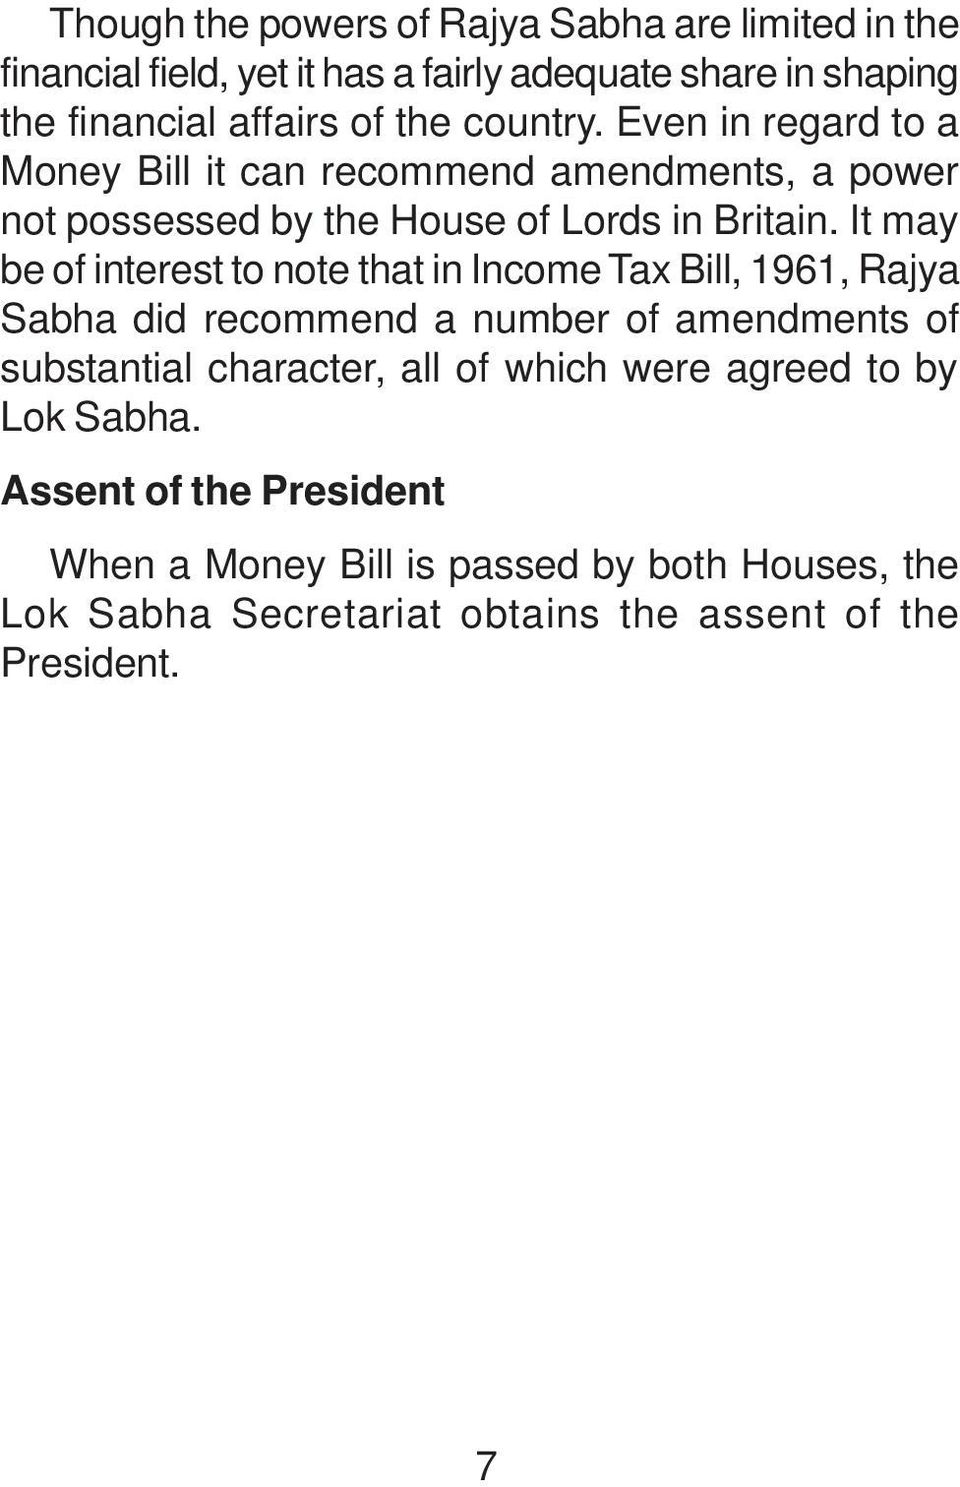 It may be of interest to note that in Income Tax Bill, 1961, Rajya Sabha did recommend a number of amendments of substantial character, all of